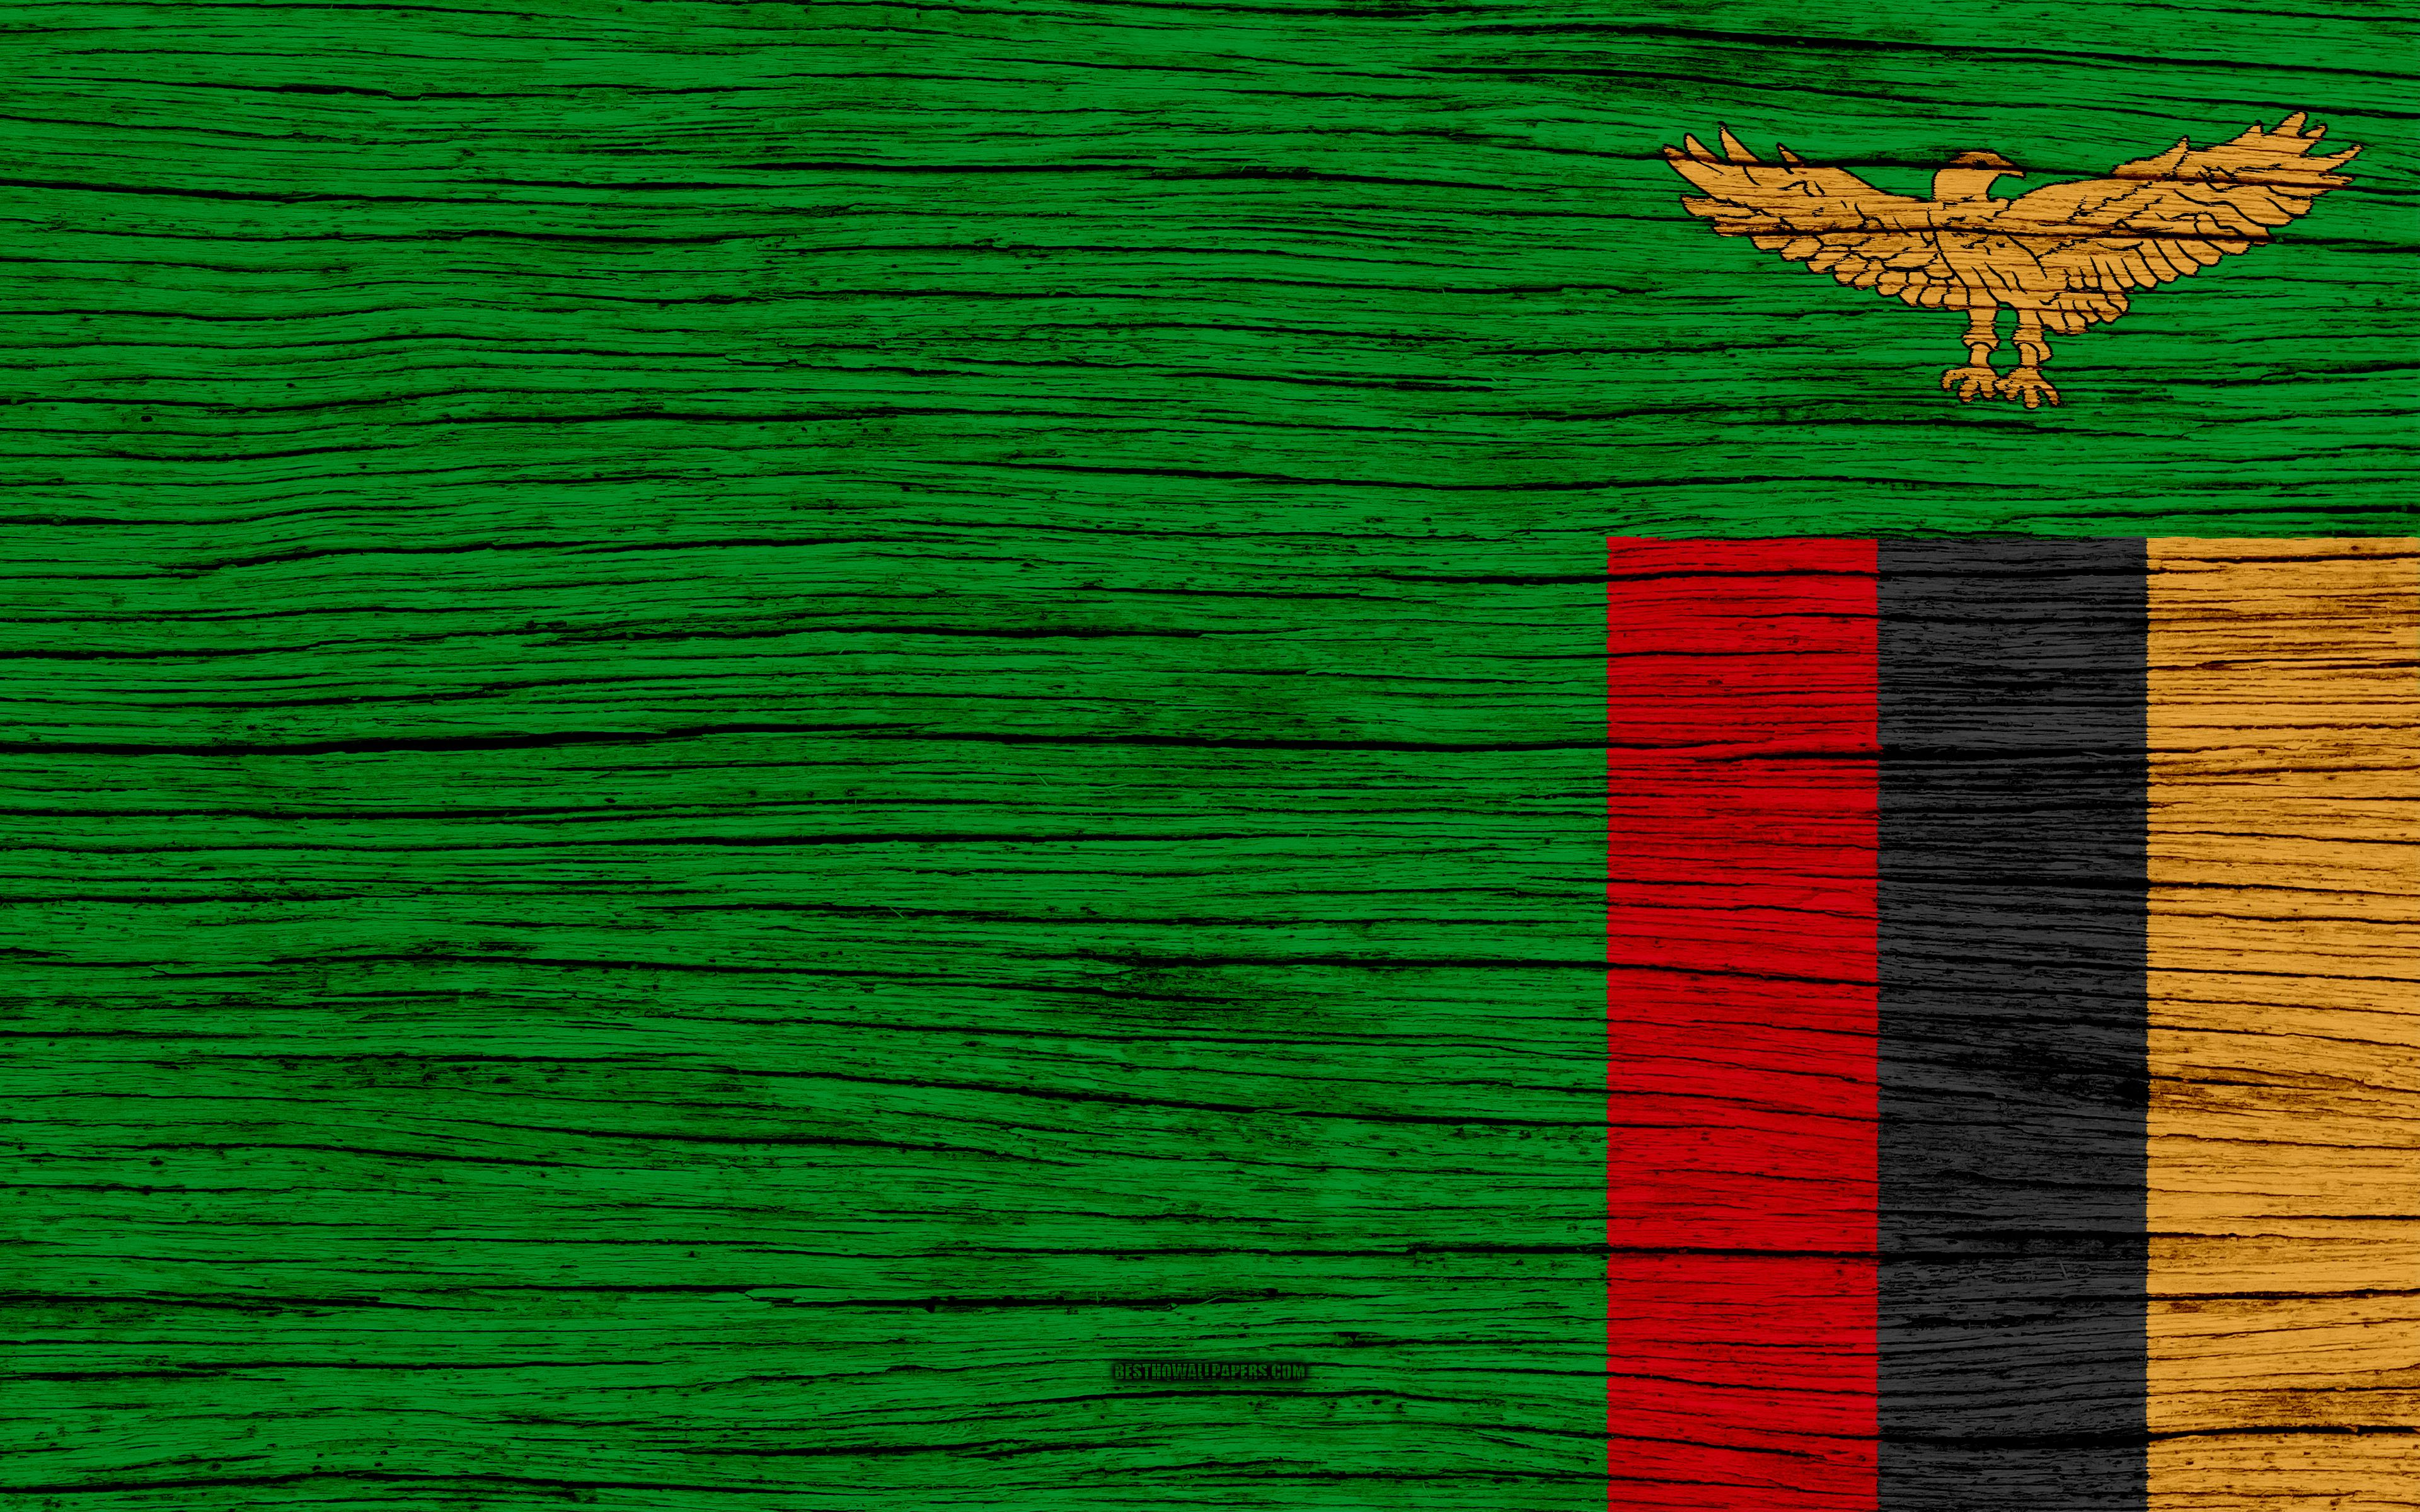 Download wallpapers Flag of Zambia, 4k, Africa, wooden texture